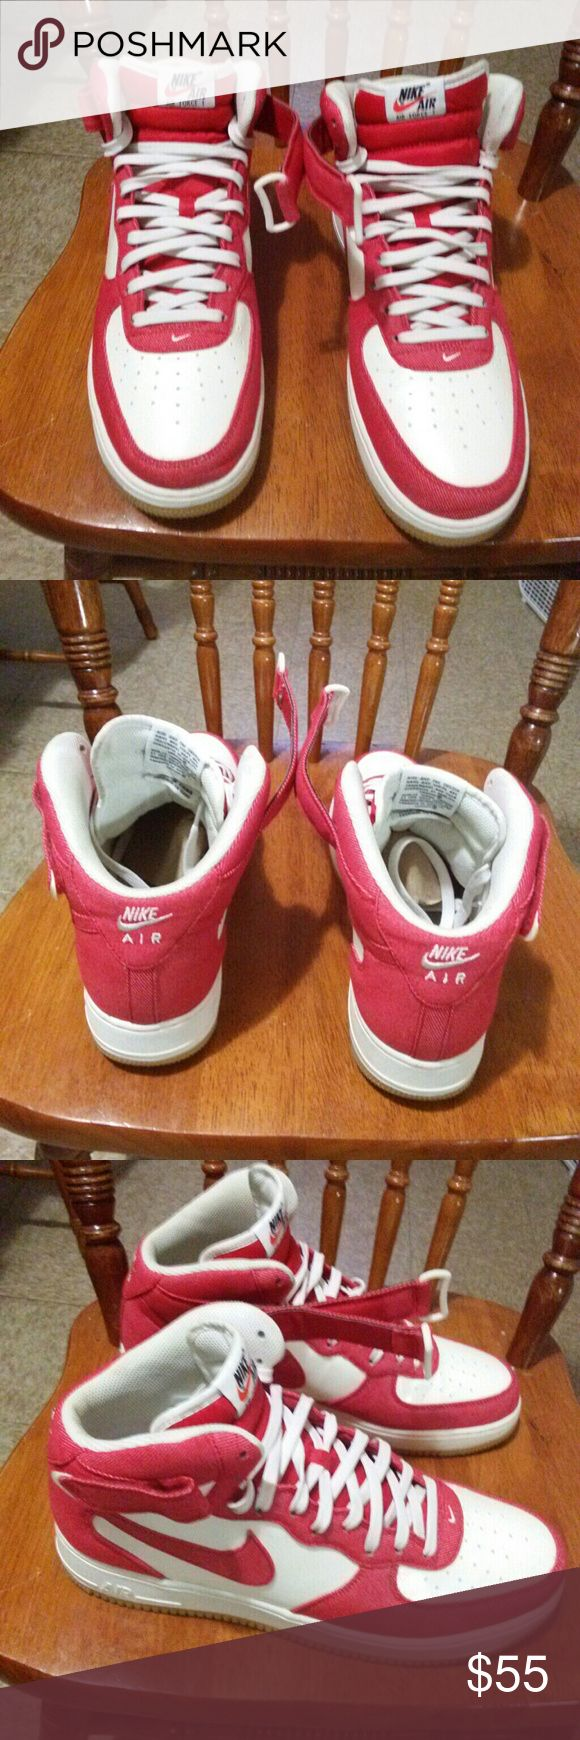 NIKE AIR FORCE 1 MENS SHOES SIZE 13 MENS AIR FORCE 1 MENS SHOES SIZE 13 SHOES ARE WHITE AND RED WITH GUM BOTTOM  SHOES ARE STILL IN GOOD CONDITION Nike Shoes Sneakers